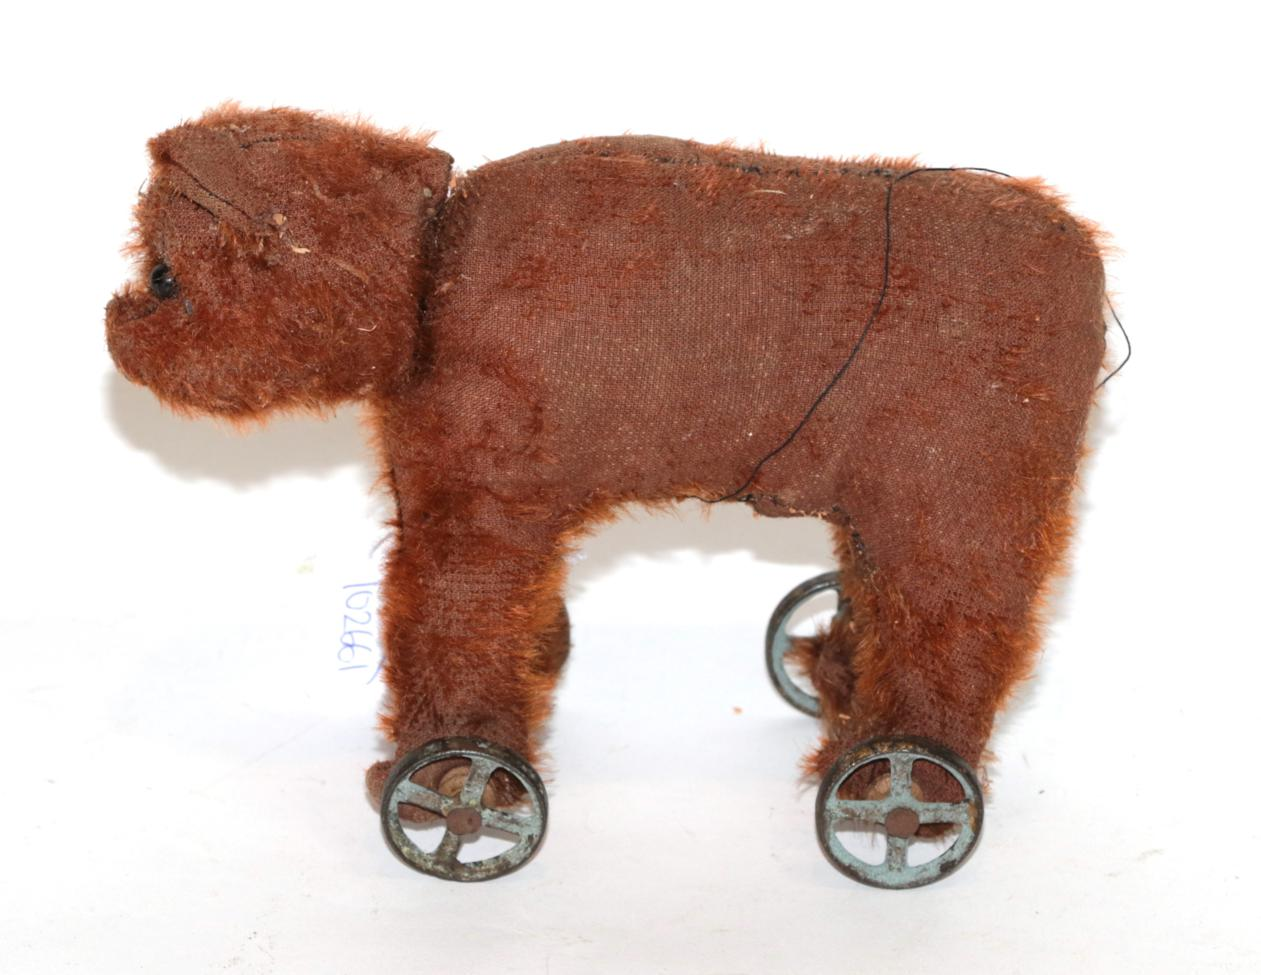 Lot 1022 - An early 20th century Steiff bear on wheels in red/brown mohair, boot button eyes, on four...